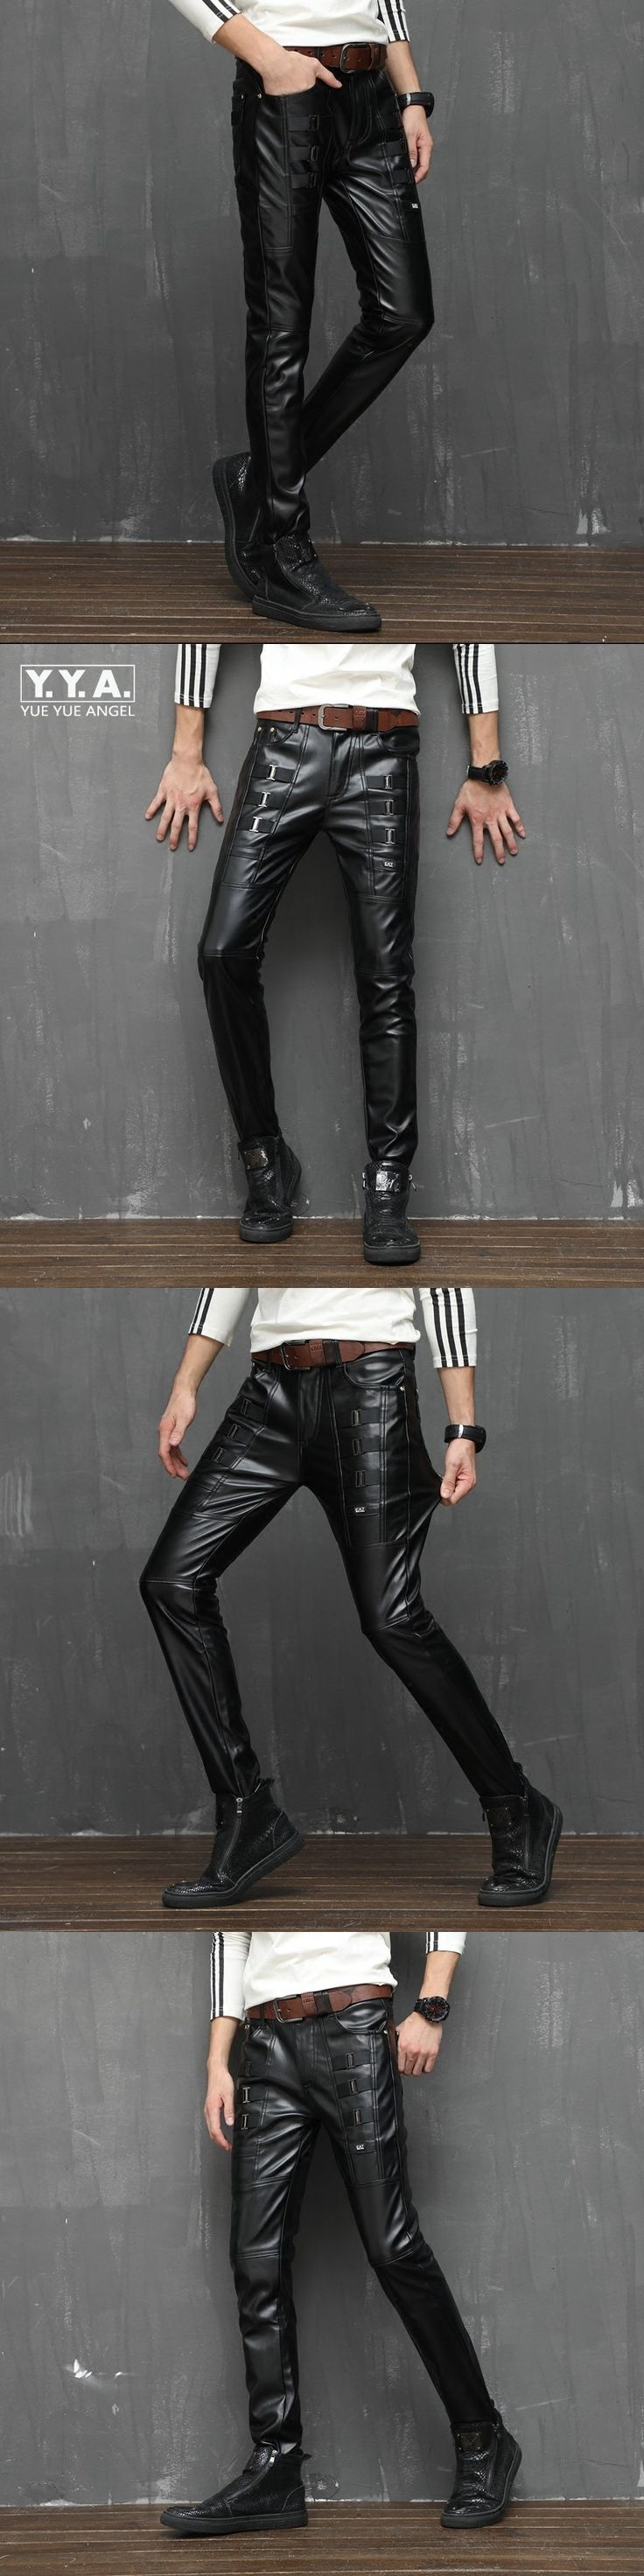 Personality Buckle Design Mens Punk Pu Leather Pants Rock Stage Show Male Trousers Winter Skinny Night Club Sexy Pantalon Hombre